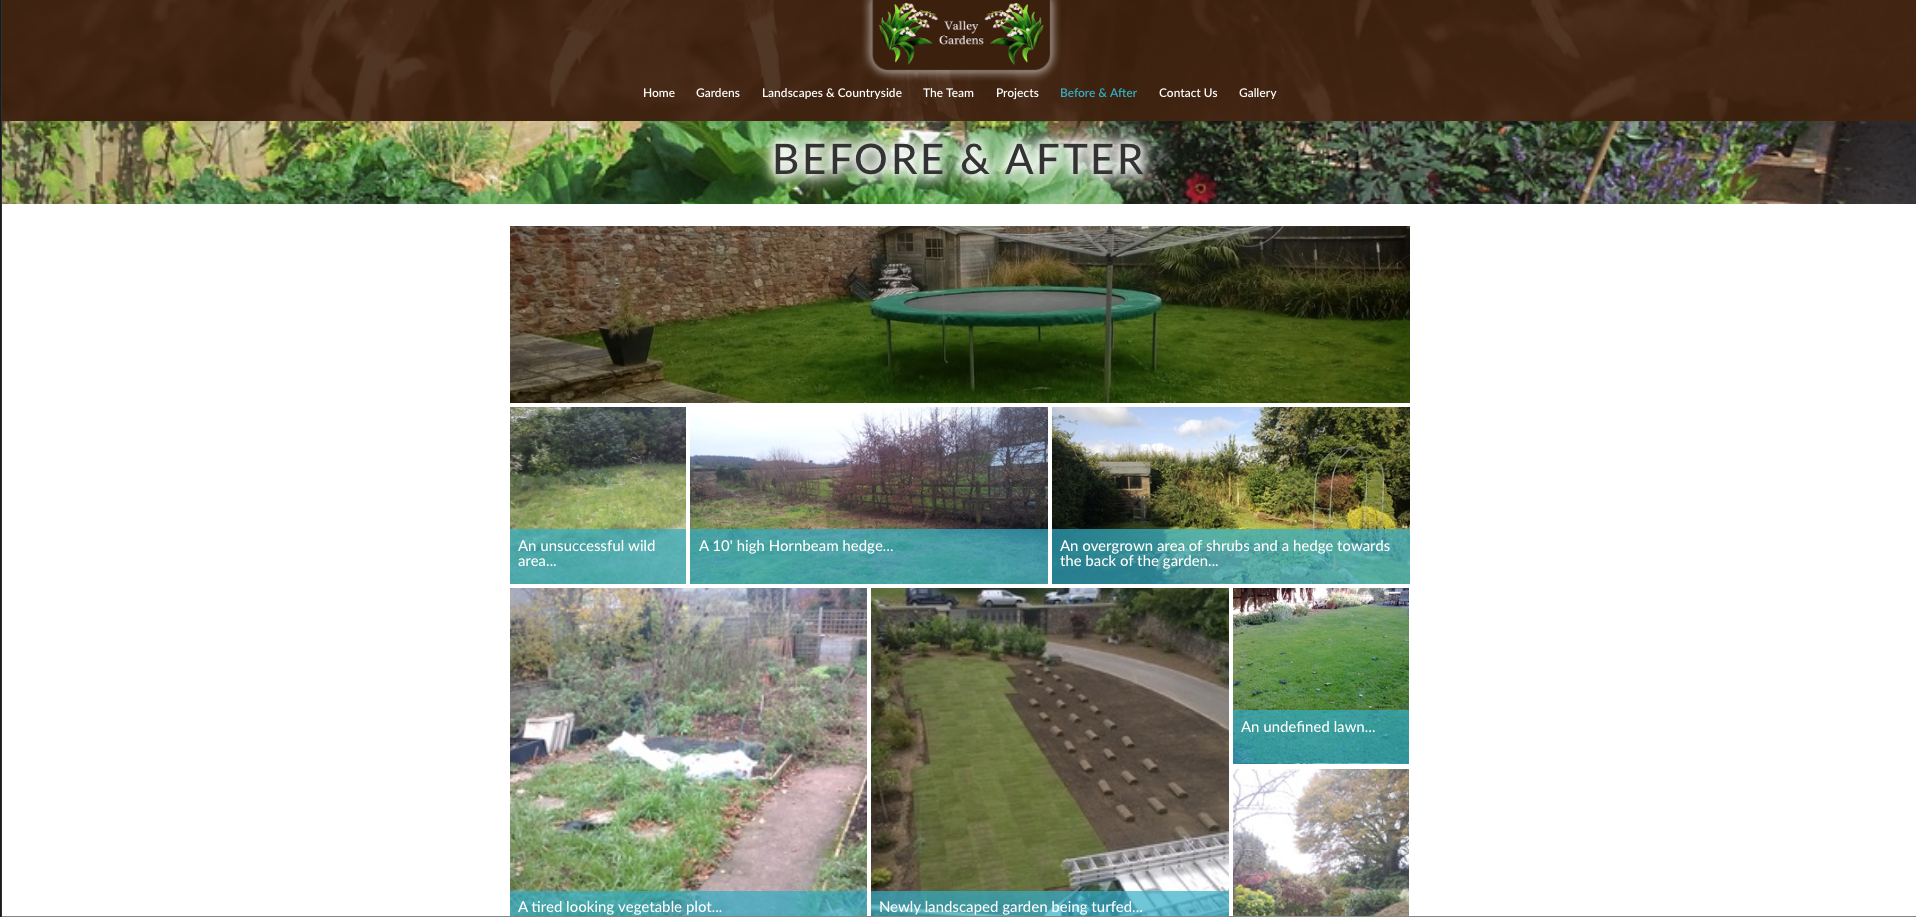 Valley Gardens Before and After page